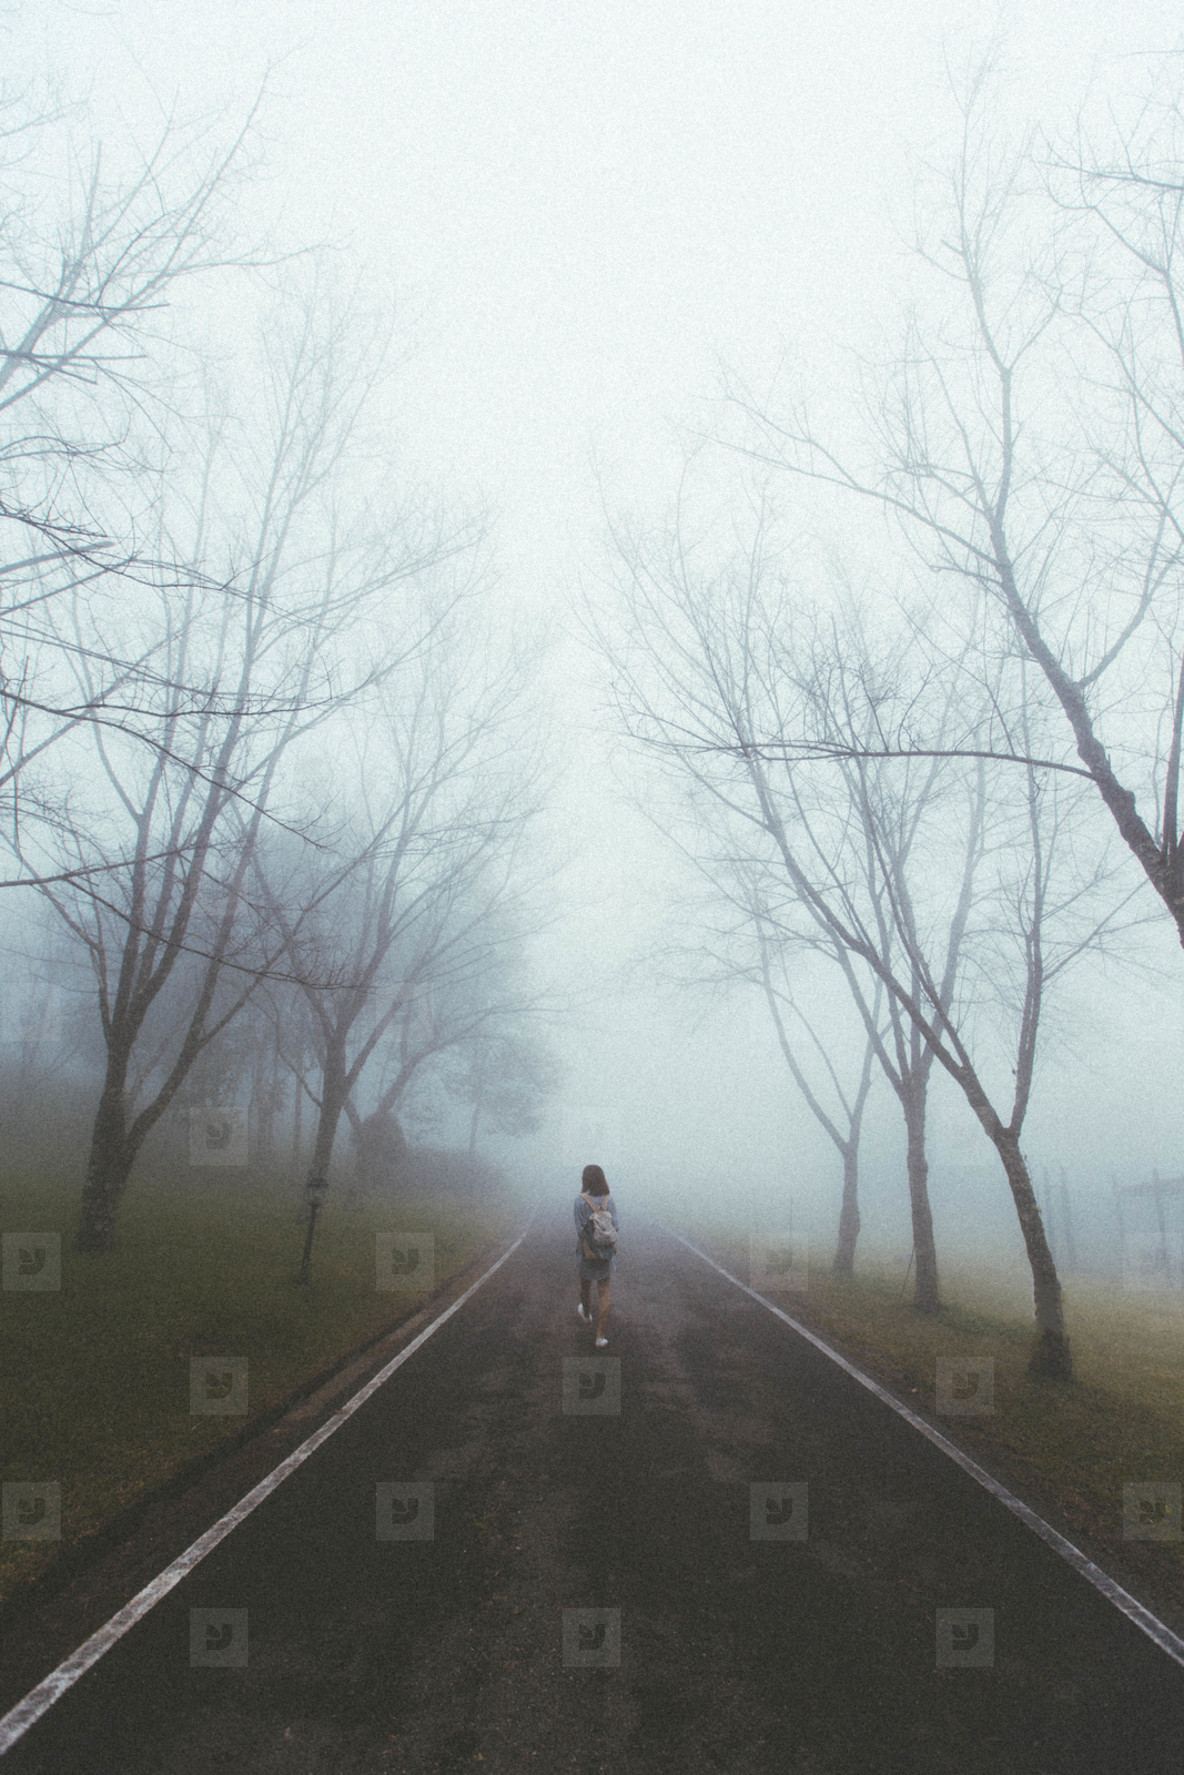 Walk into foggy forest road